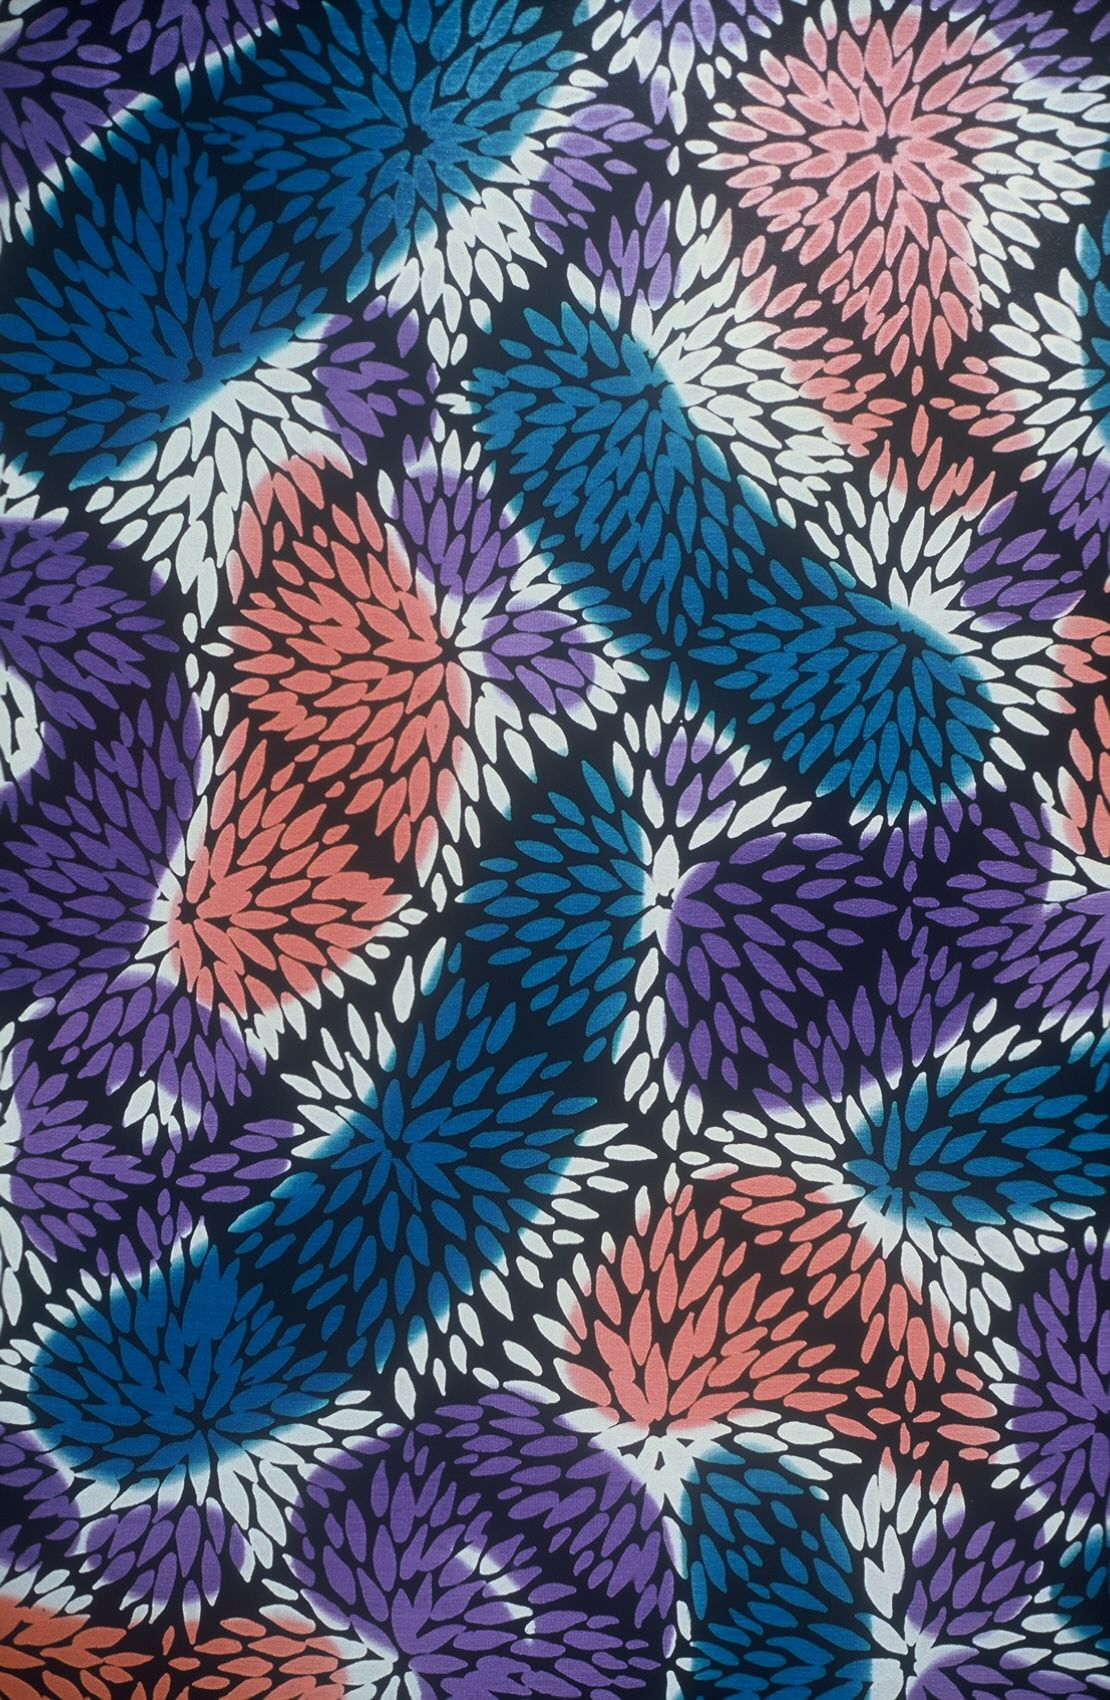 glmorrissilks.com surface pattern painted on silk used in the swimwear industry.